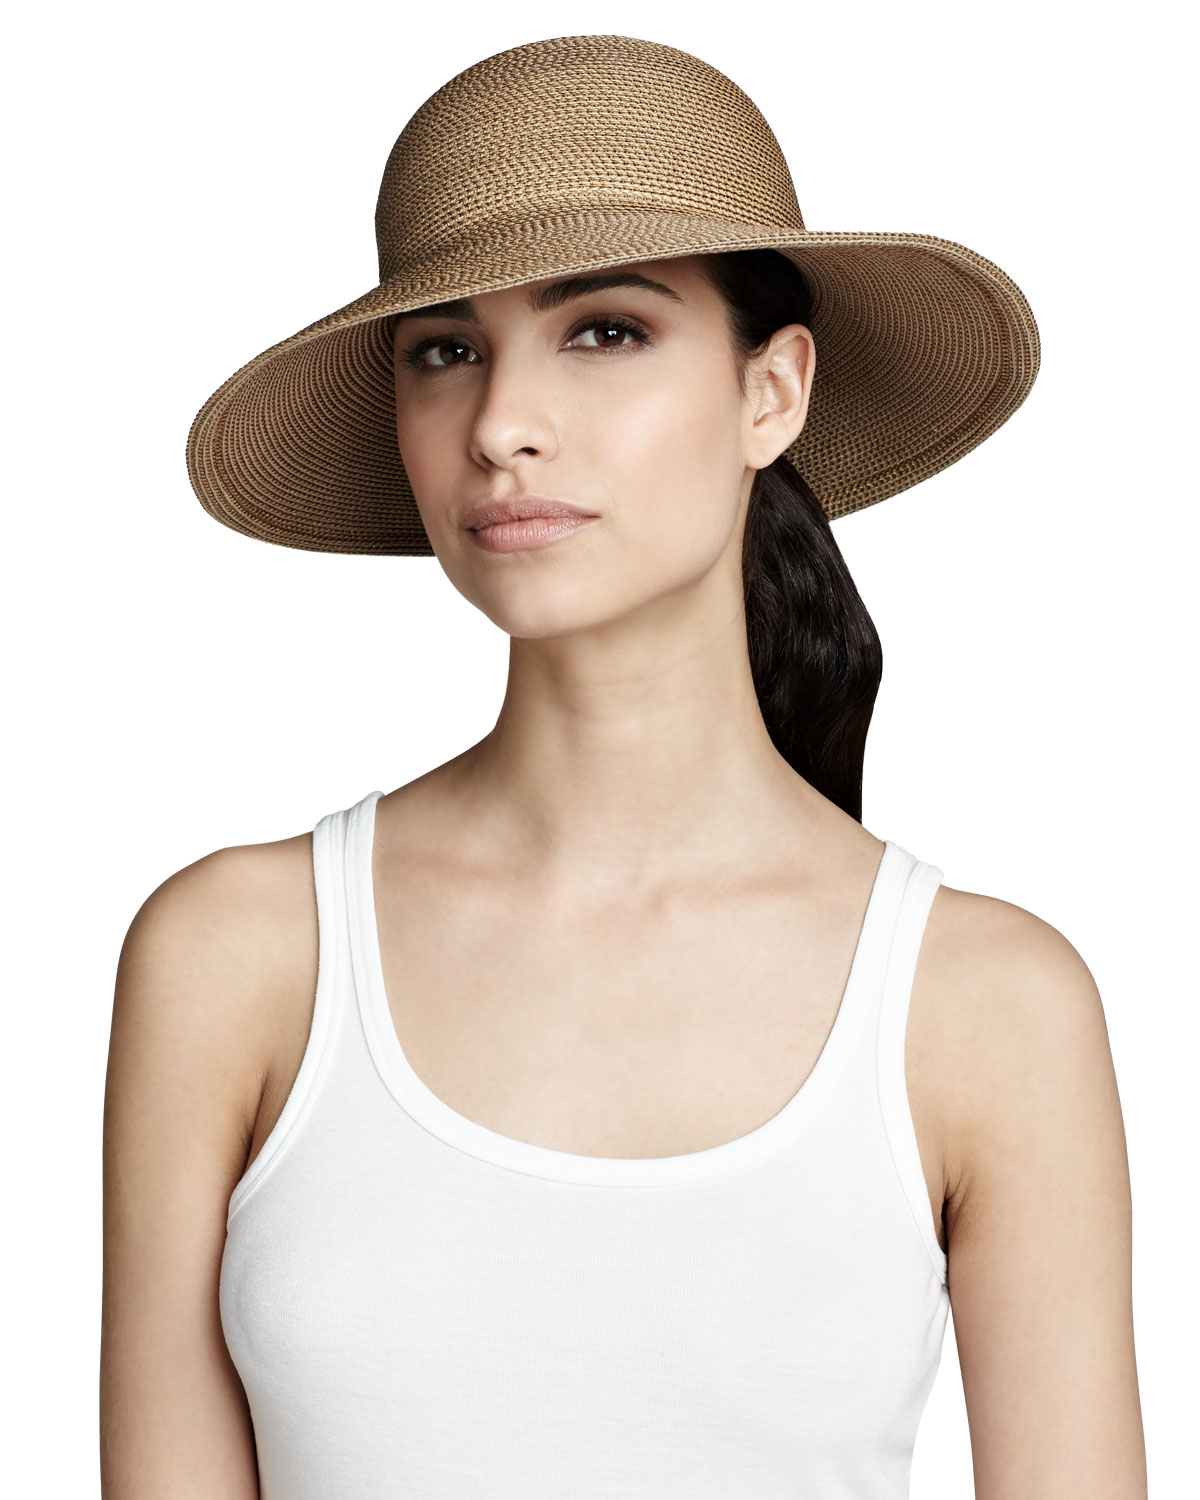 Lyst - Eric Javits Squishee Iv Hat Natural in White 87bf3e1cb16